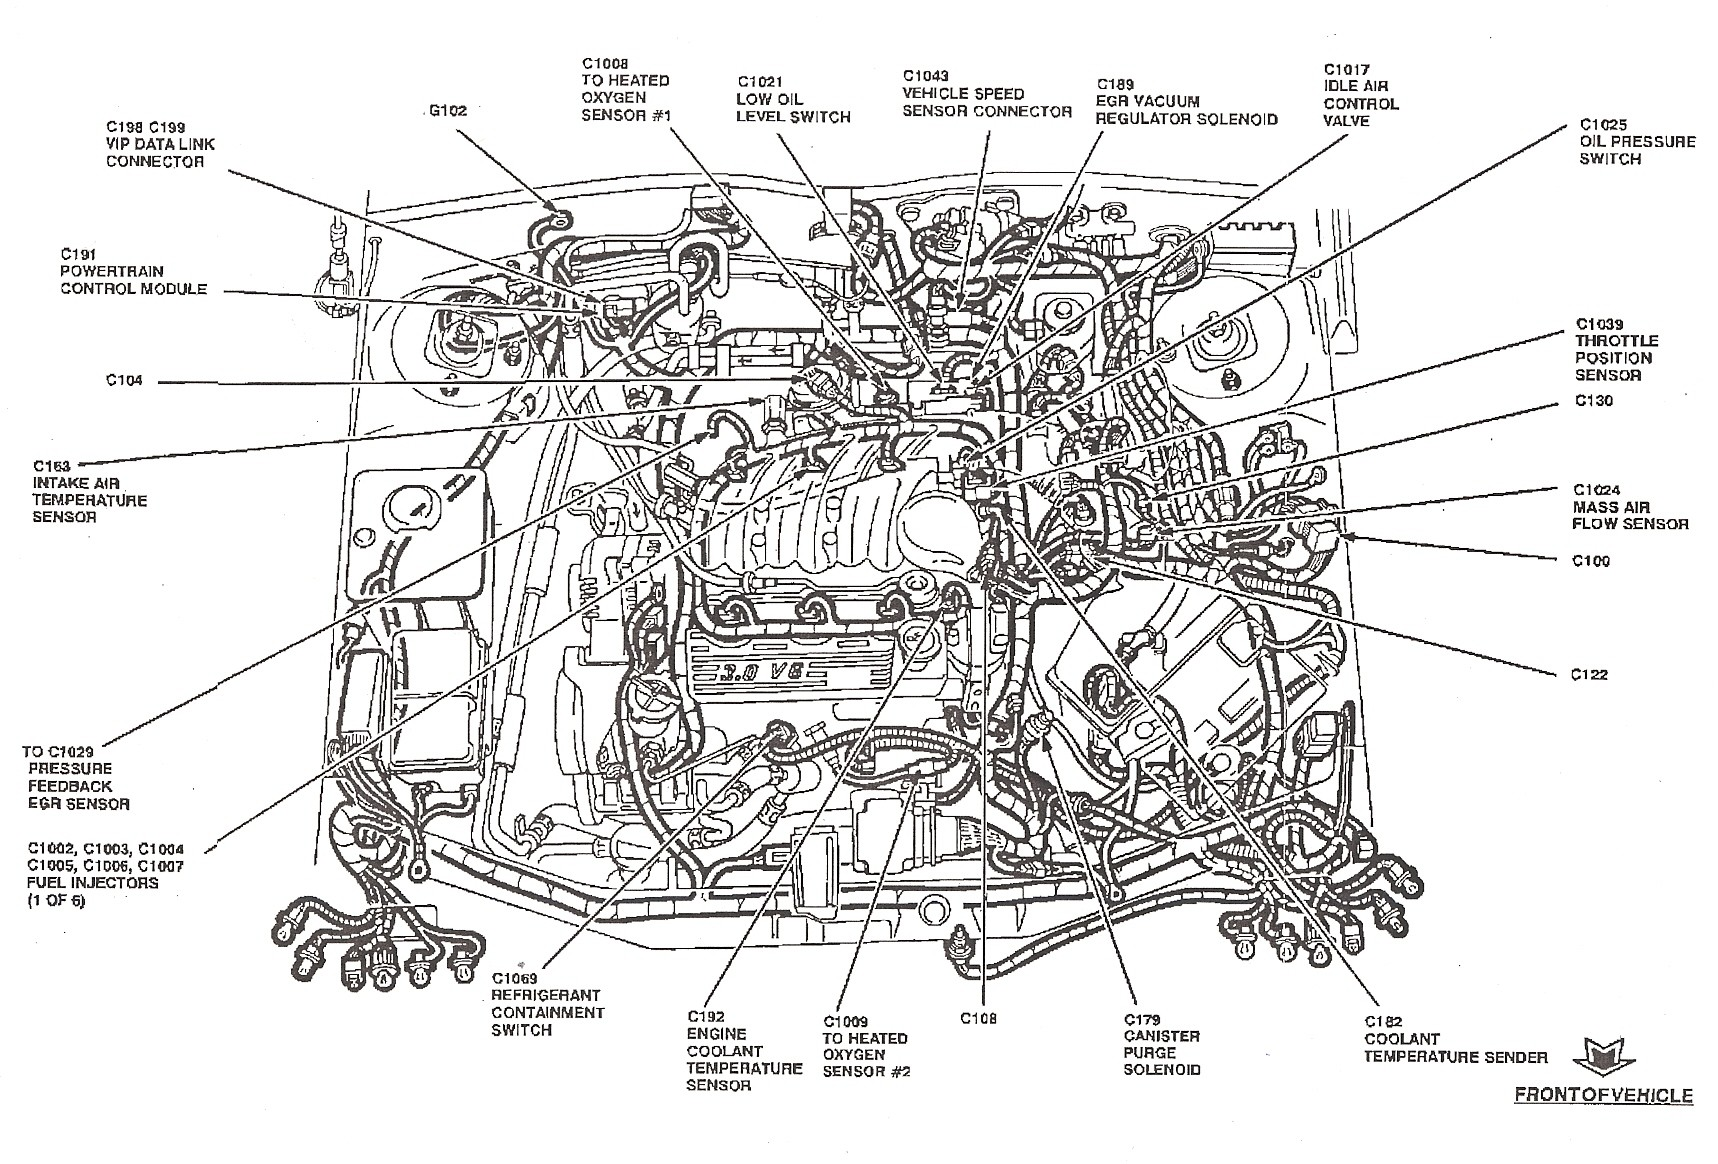 2001 Ford Focus Zx3 Engine Diagram - Wiring Diagram Schematics  Ford Focus Zxe Wiring Diagram on